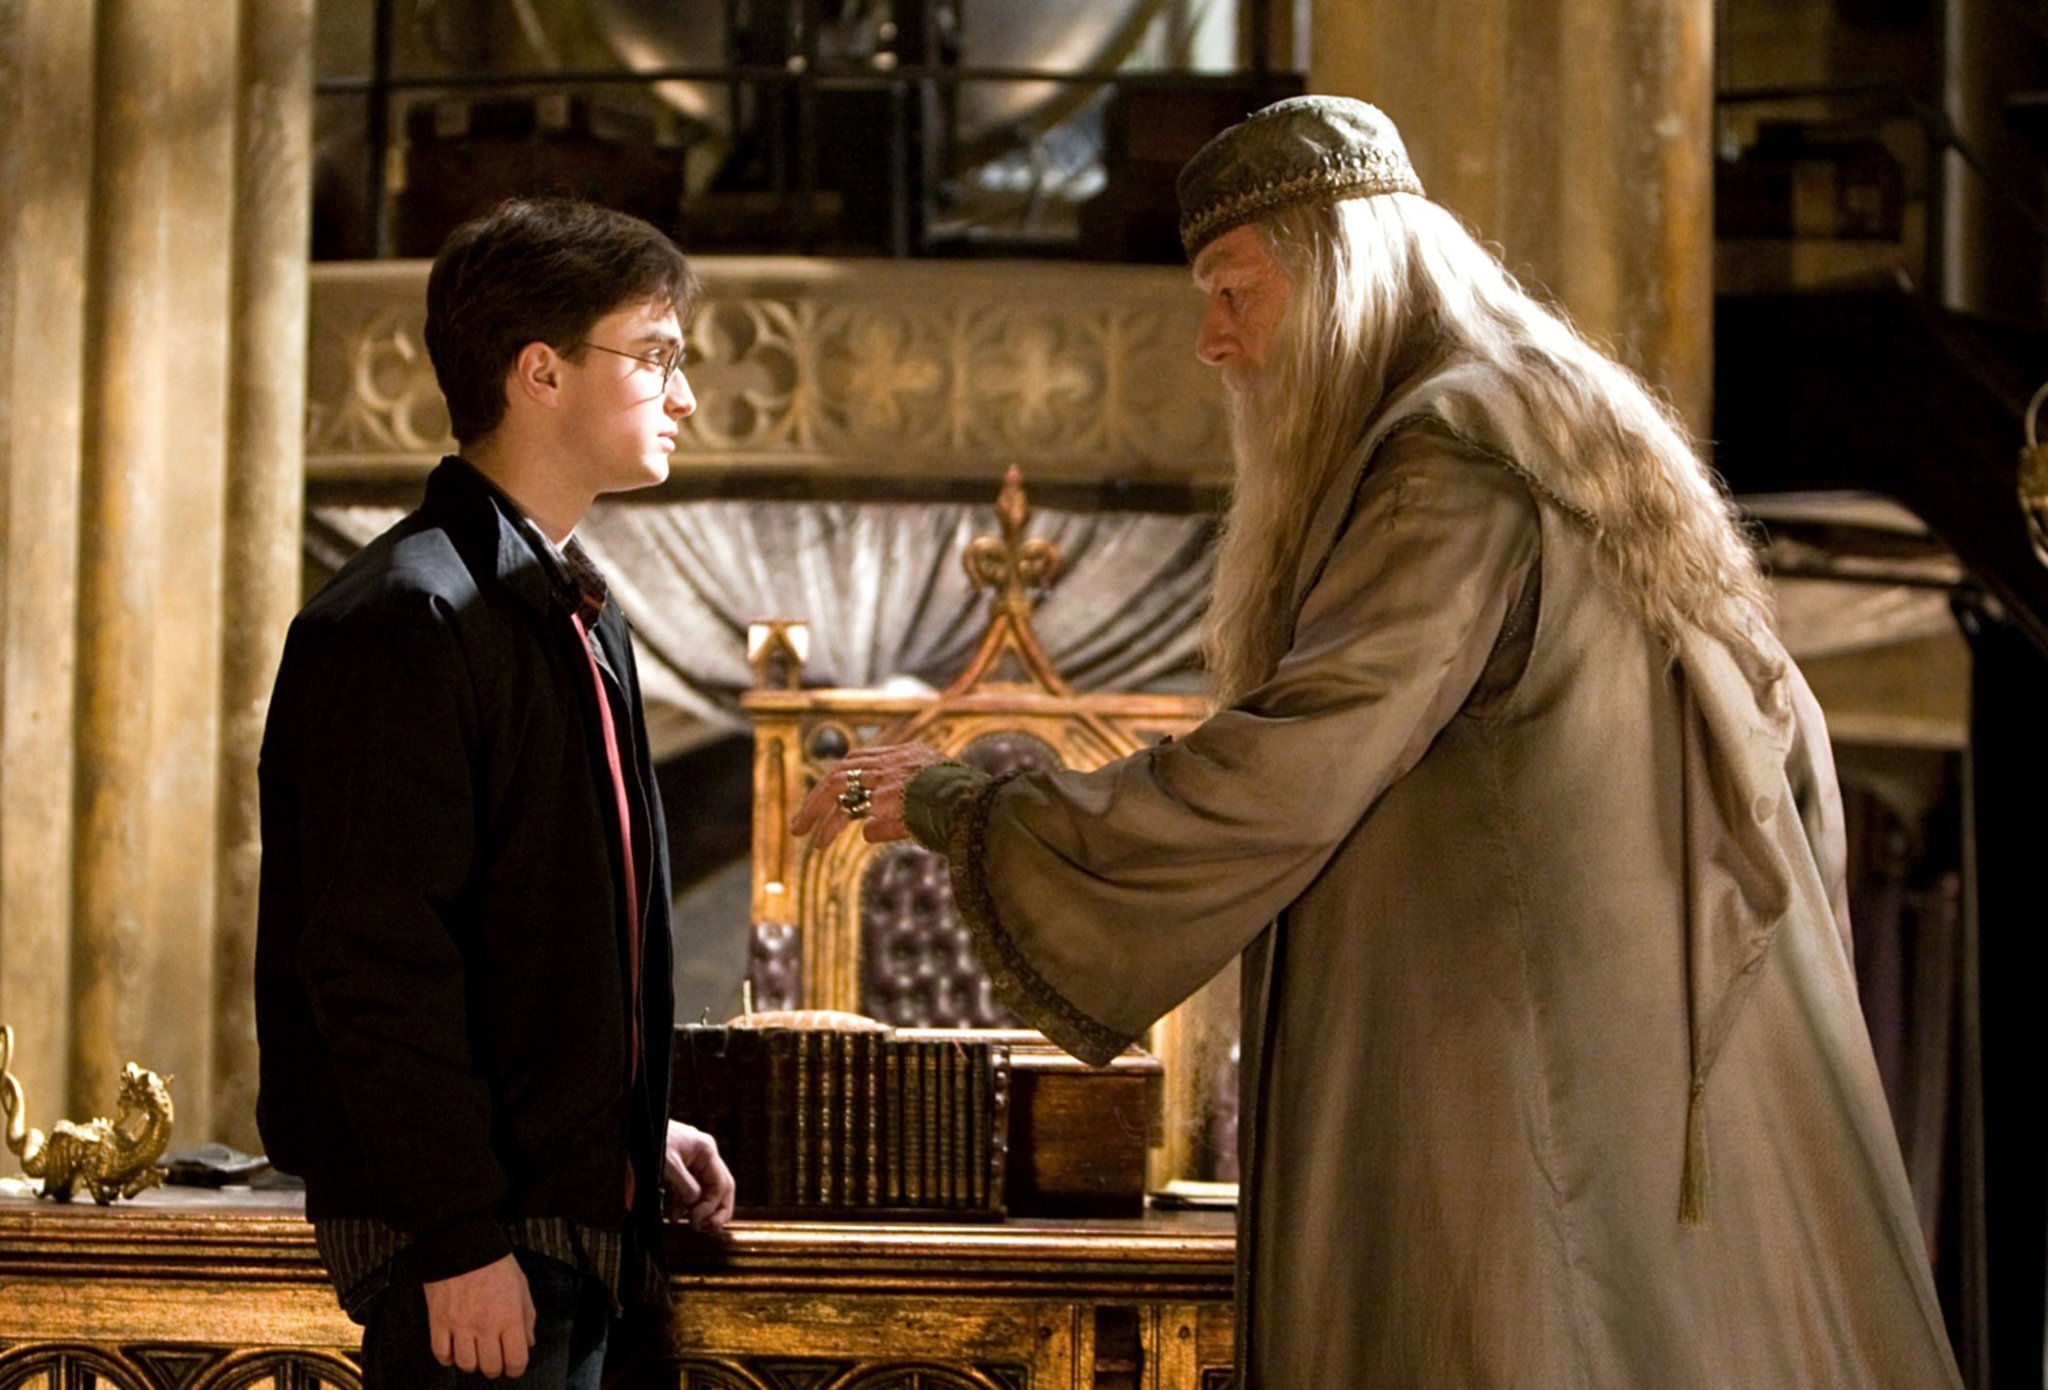 Harry and Dumbledore relationship